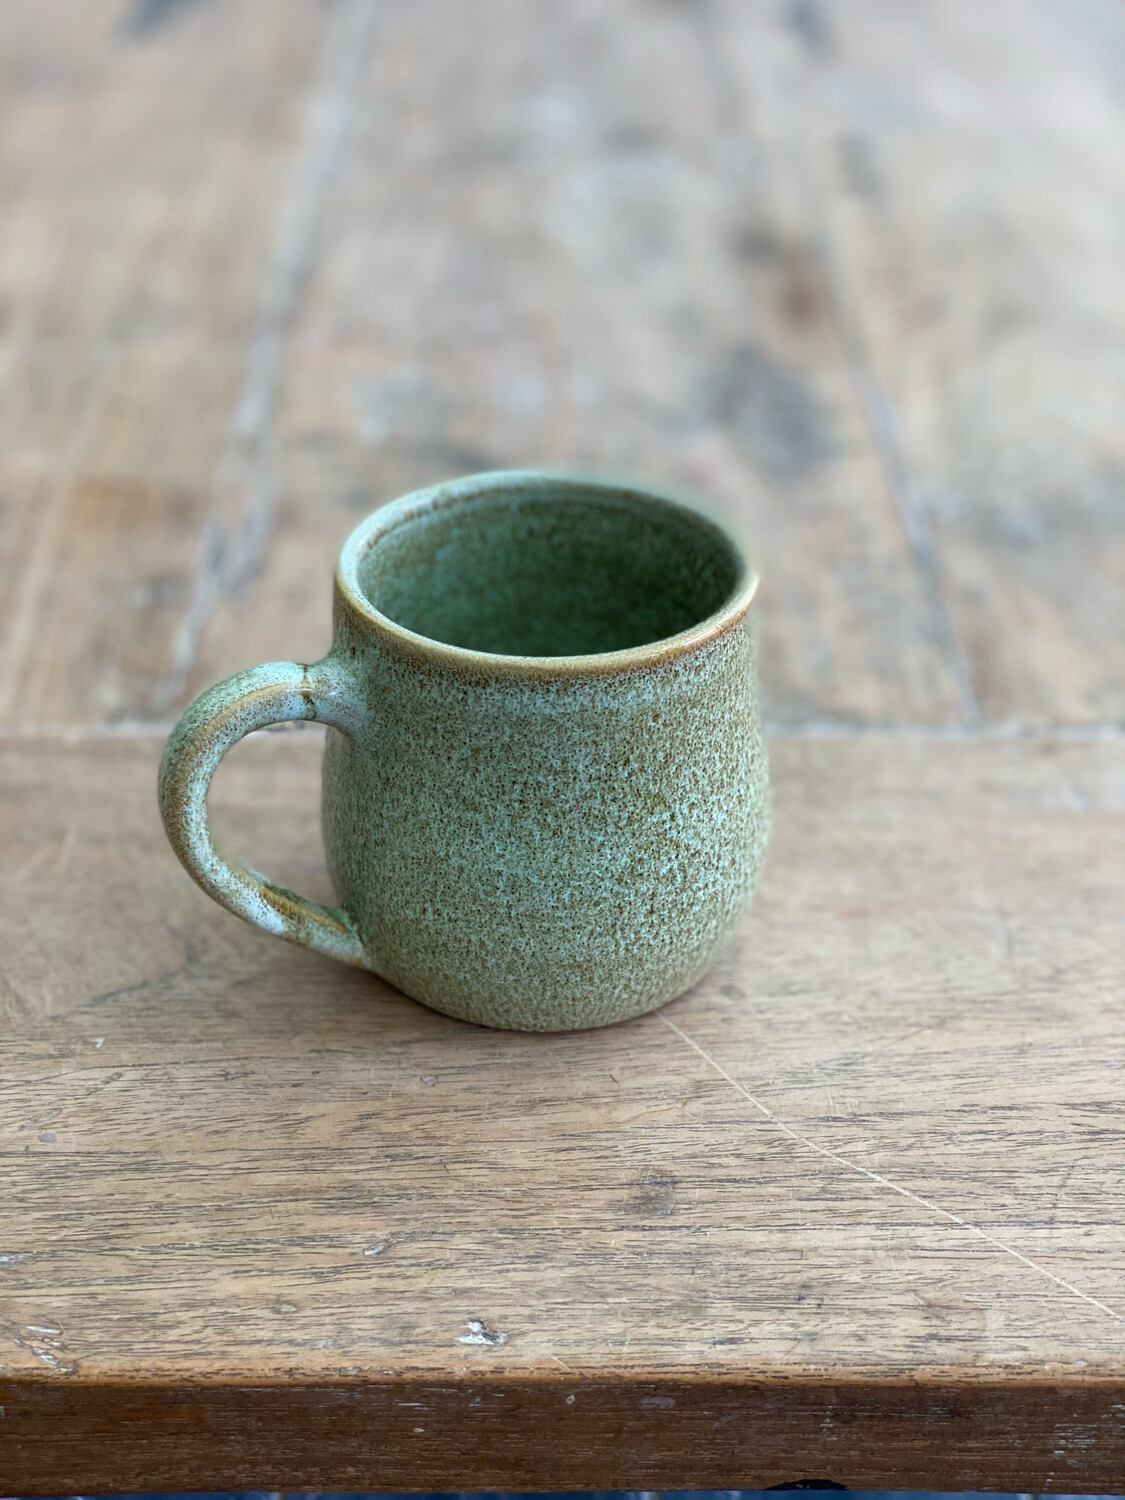 8oz Green/Brown Mug 2